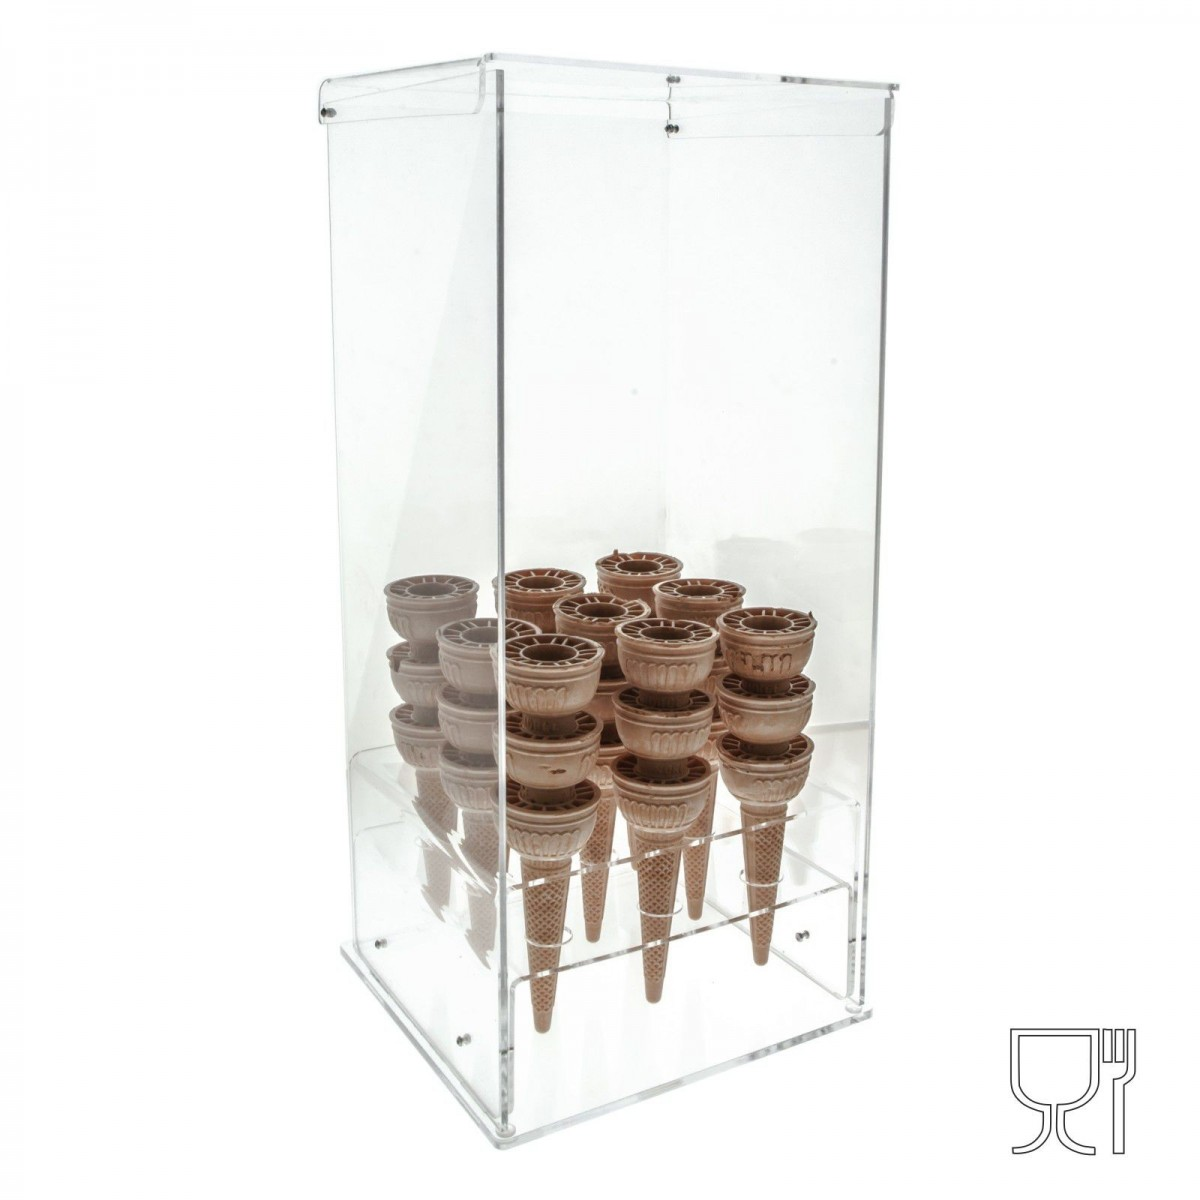 Clear Acrylic ice-cream cone holder – 90 Cone Capcity